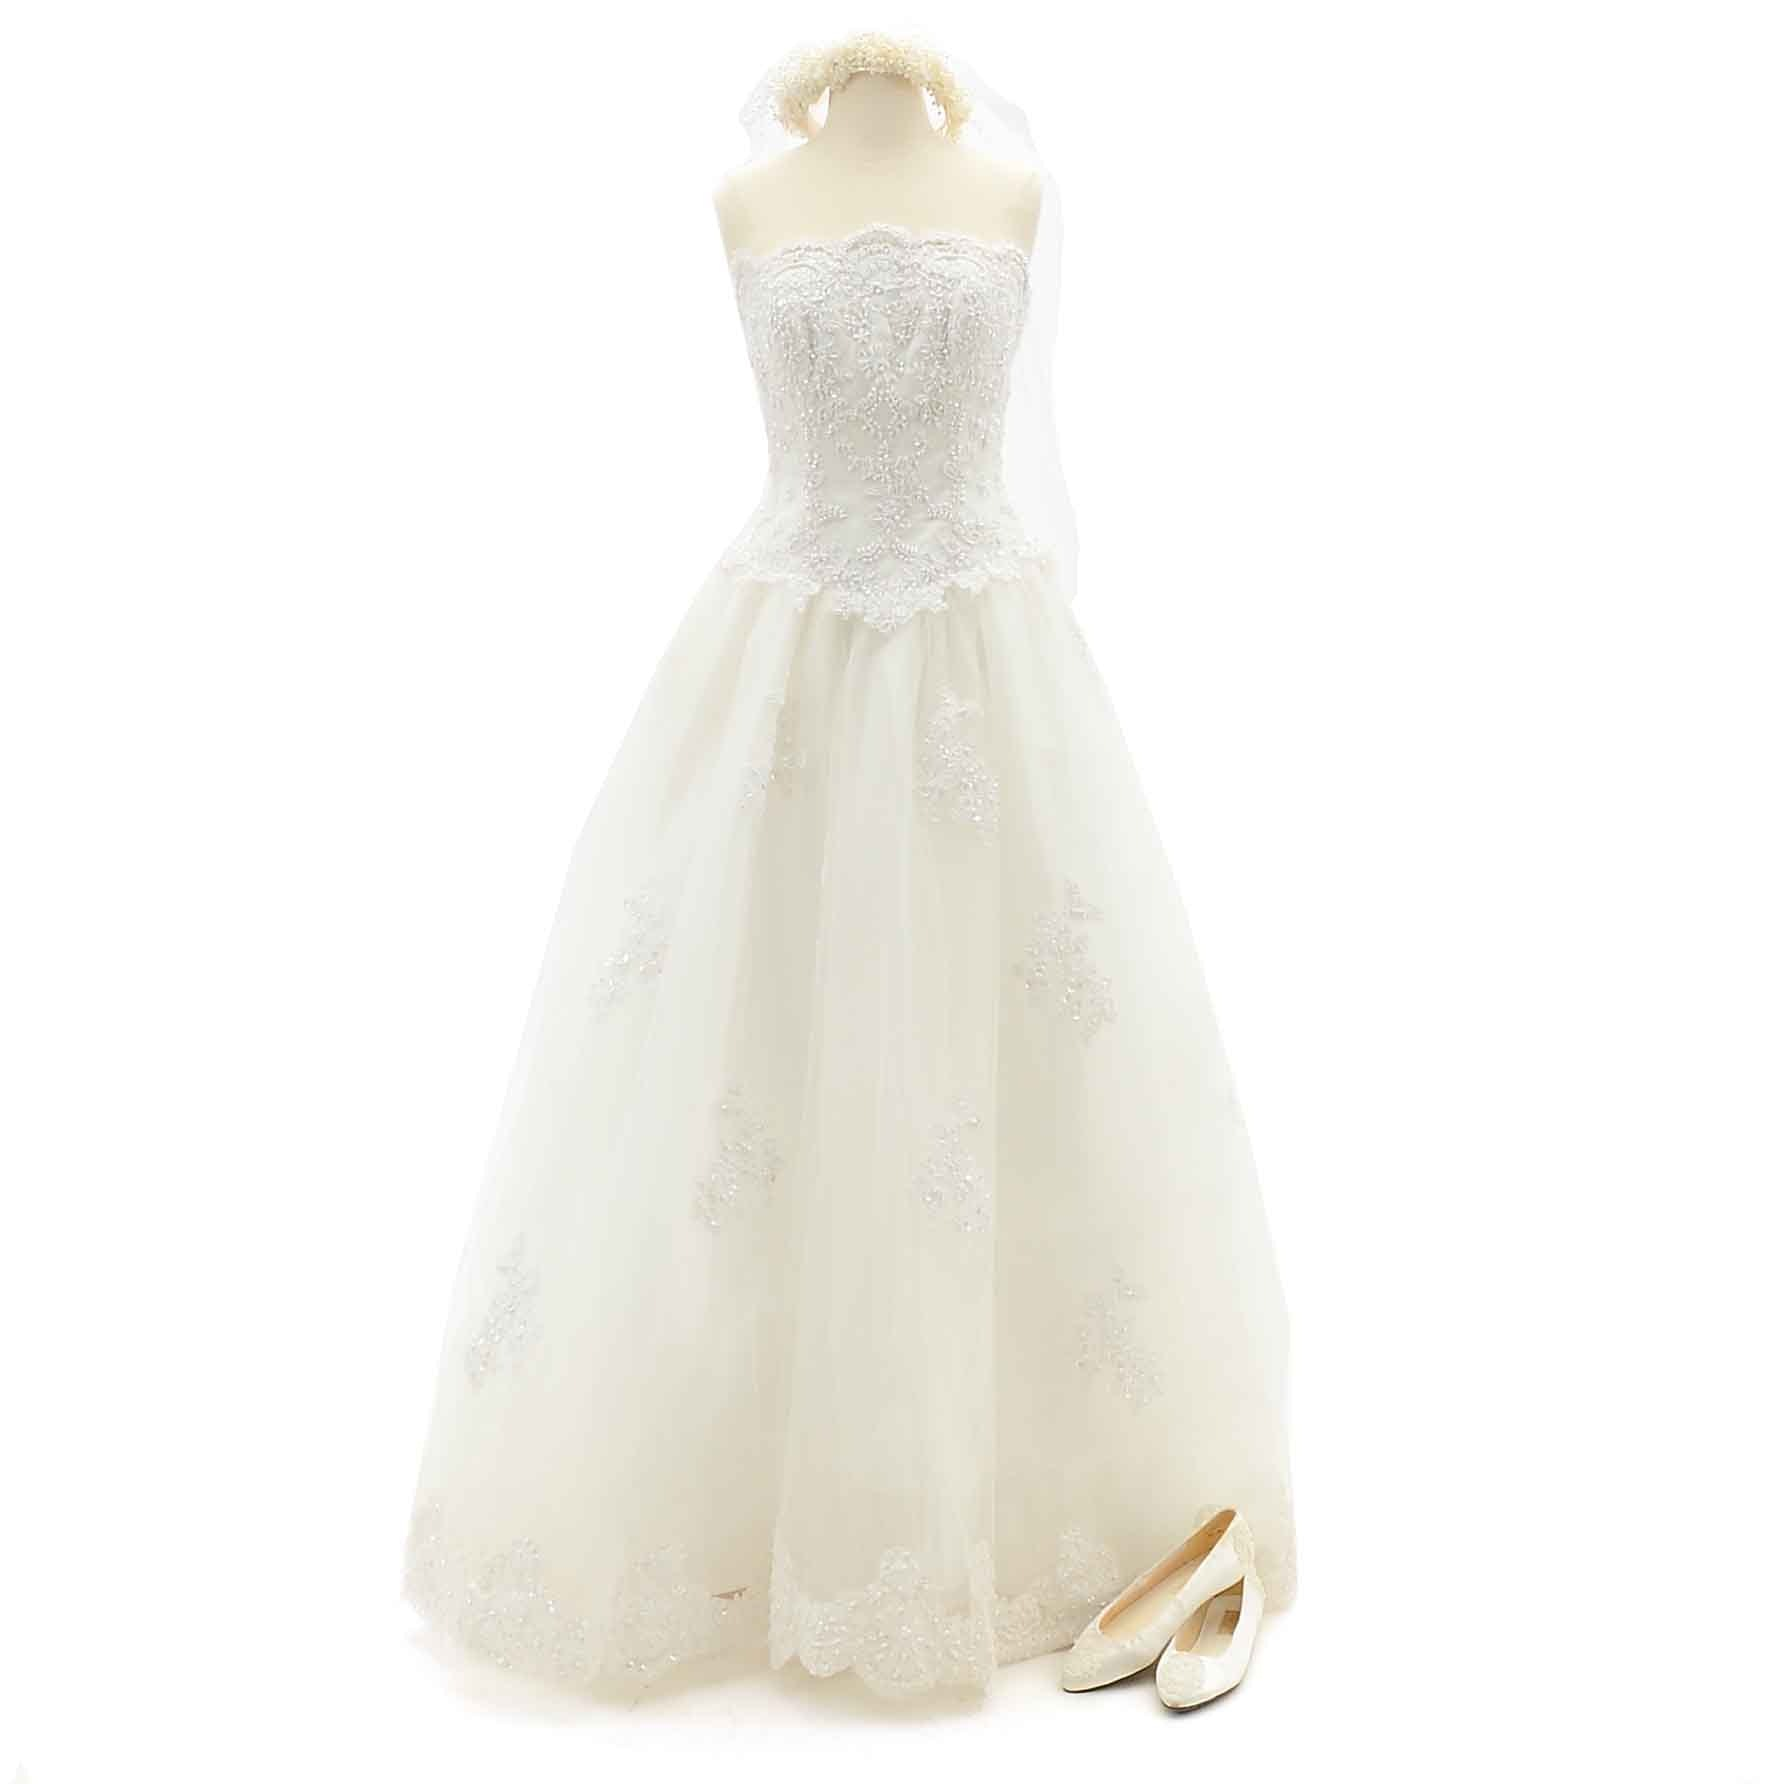 Vintage Wedding Dress, Shoes and House of Bianchi Veil